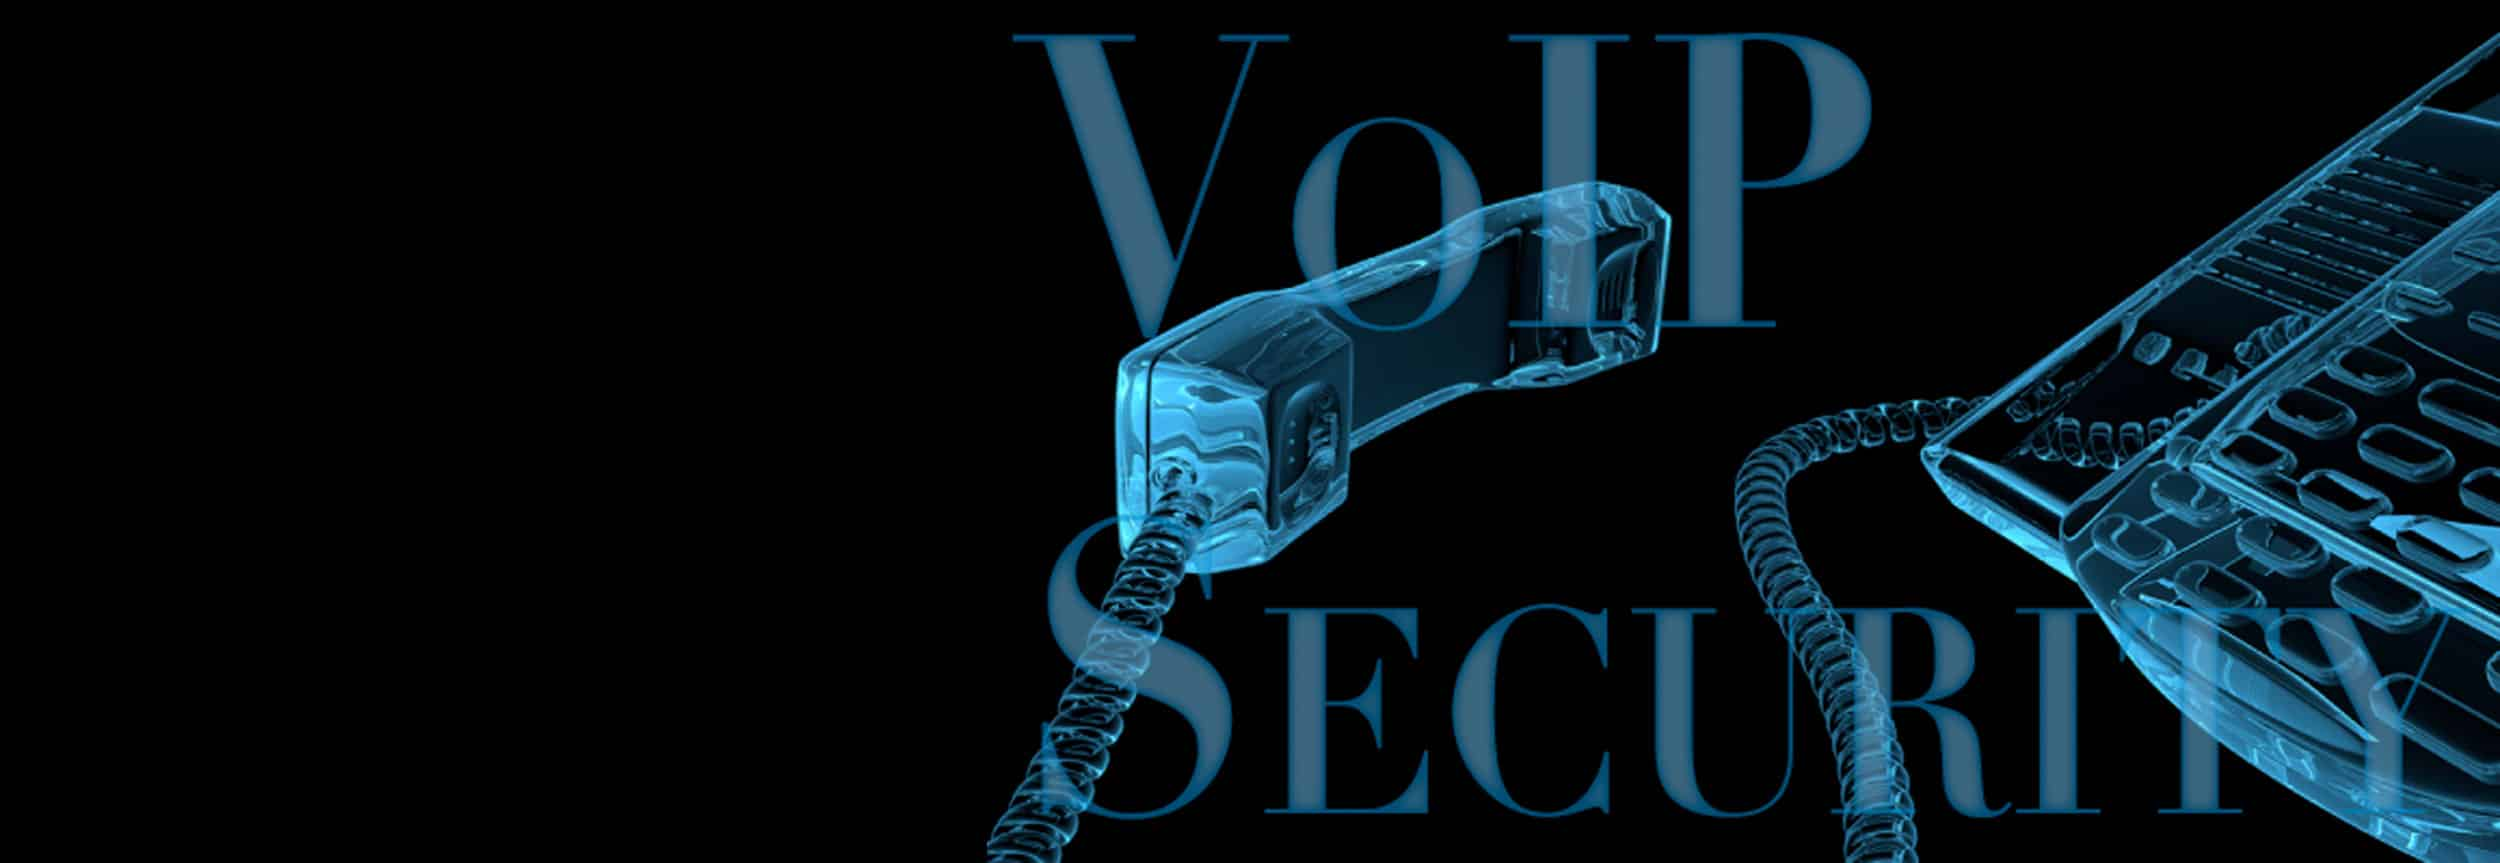 most secure voip